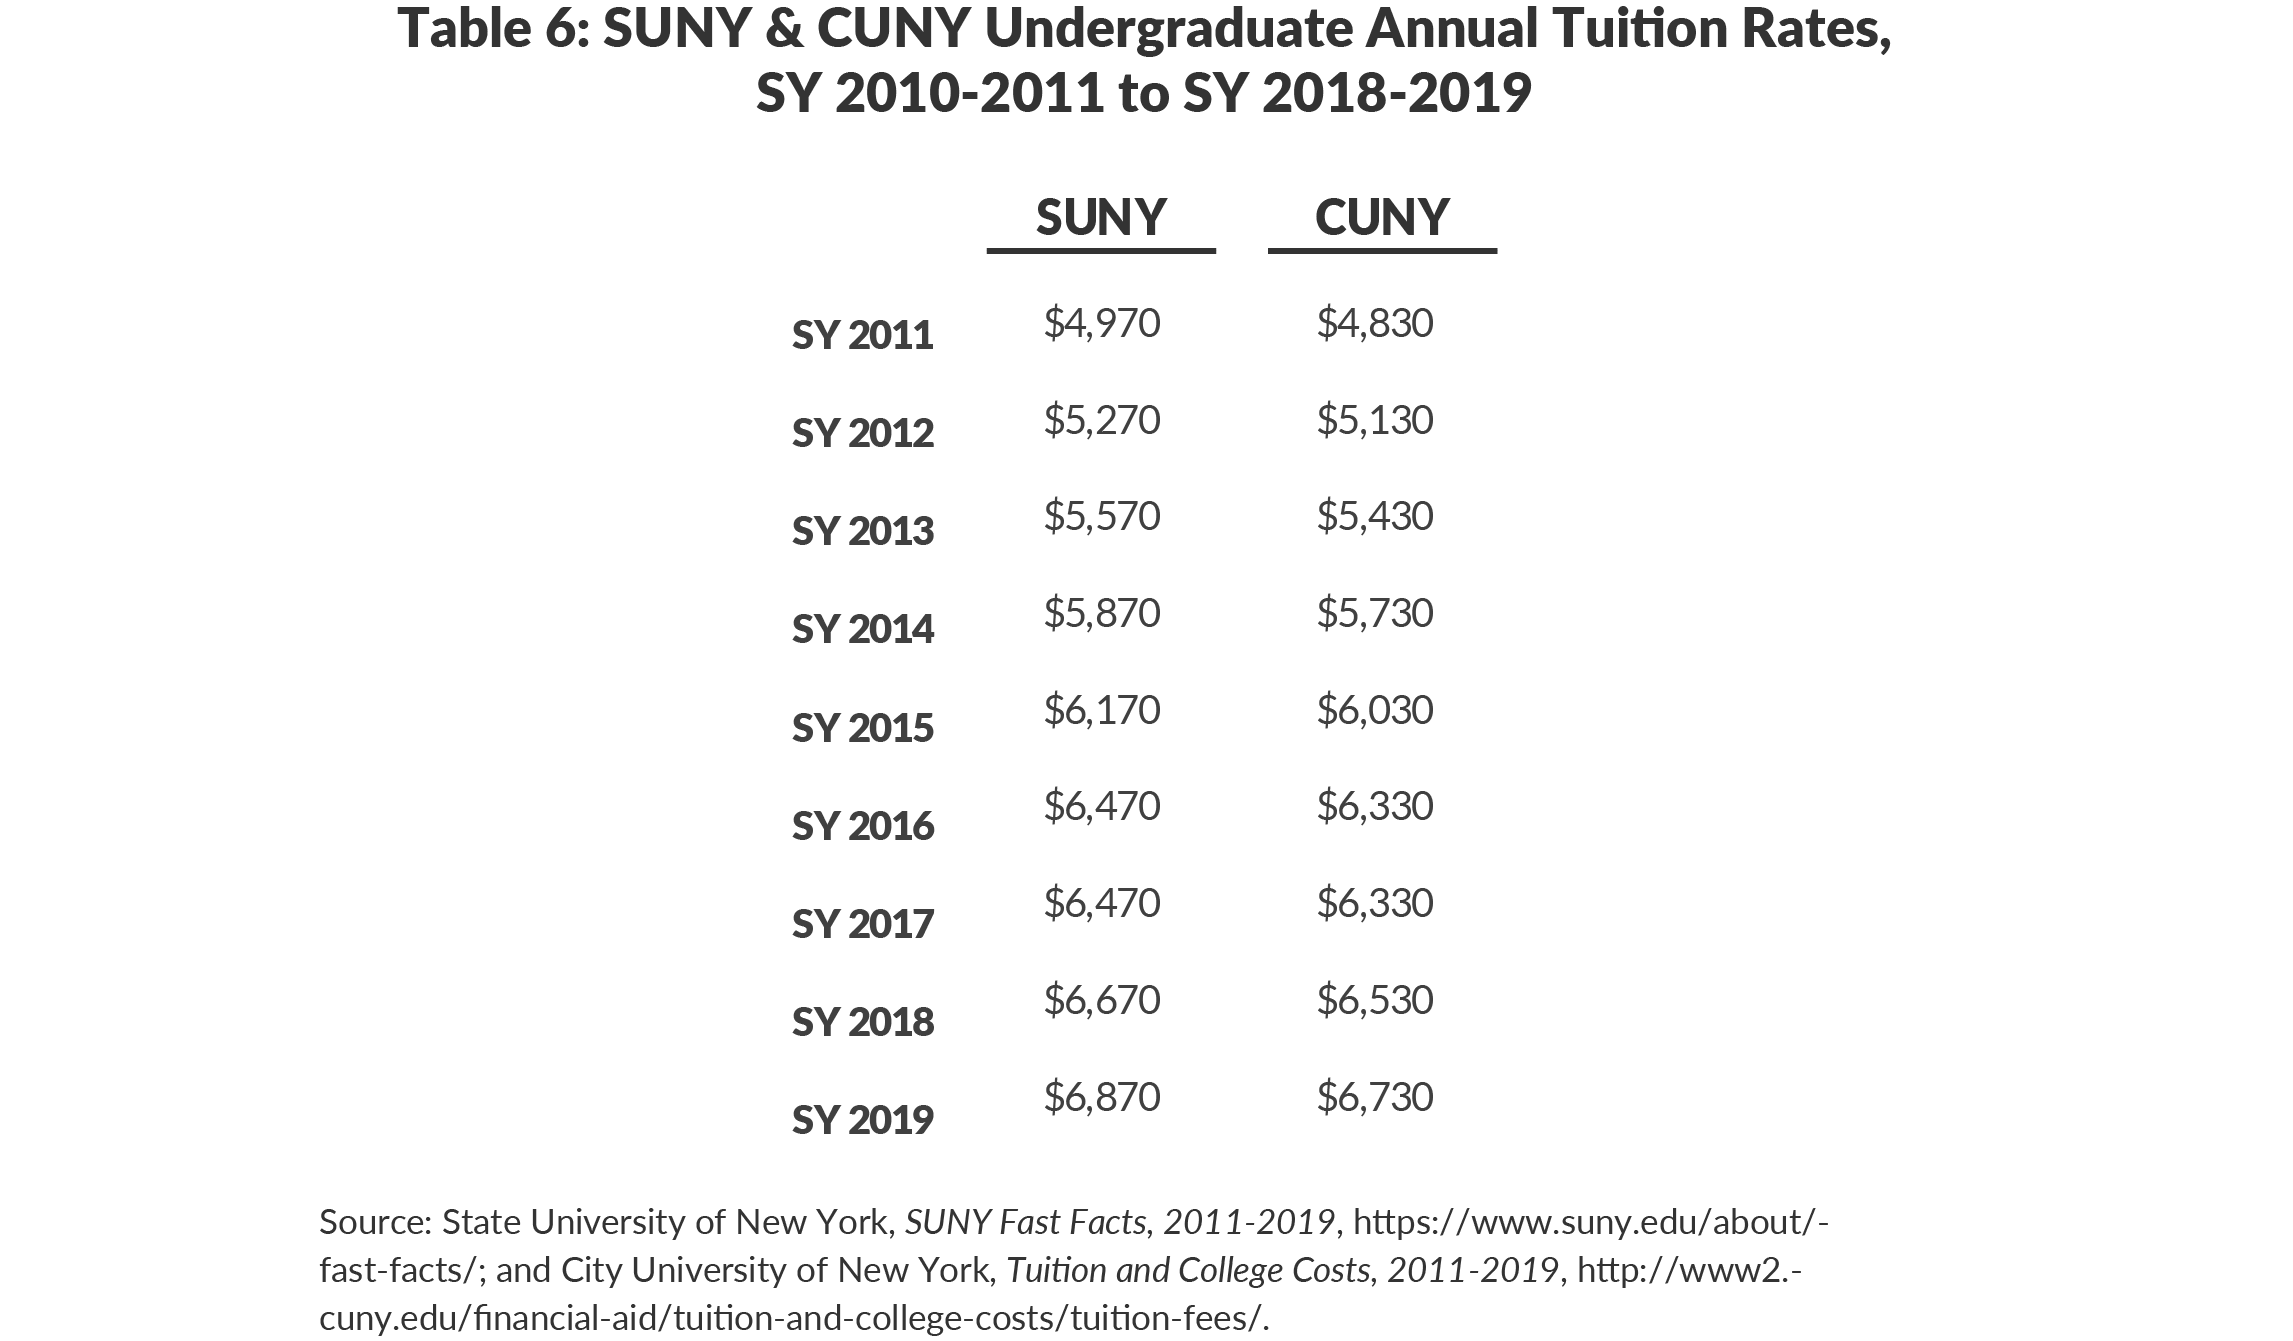 Table 6: SUNY & CUNY Undergraduate Annual Tuition Rates, SY 2010-2011 to SY 2018-2019